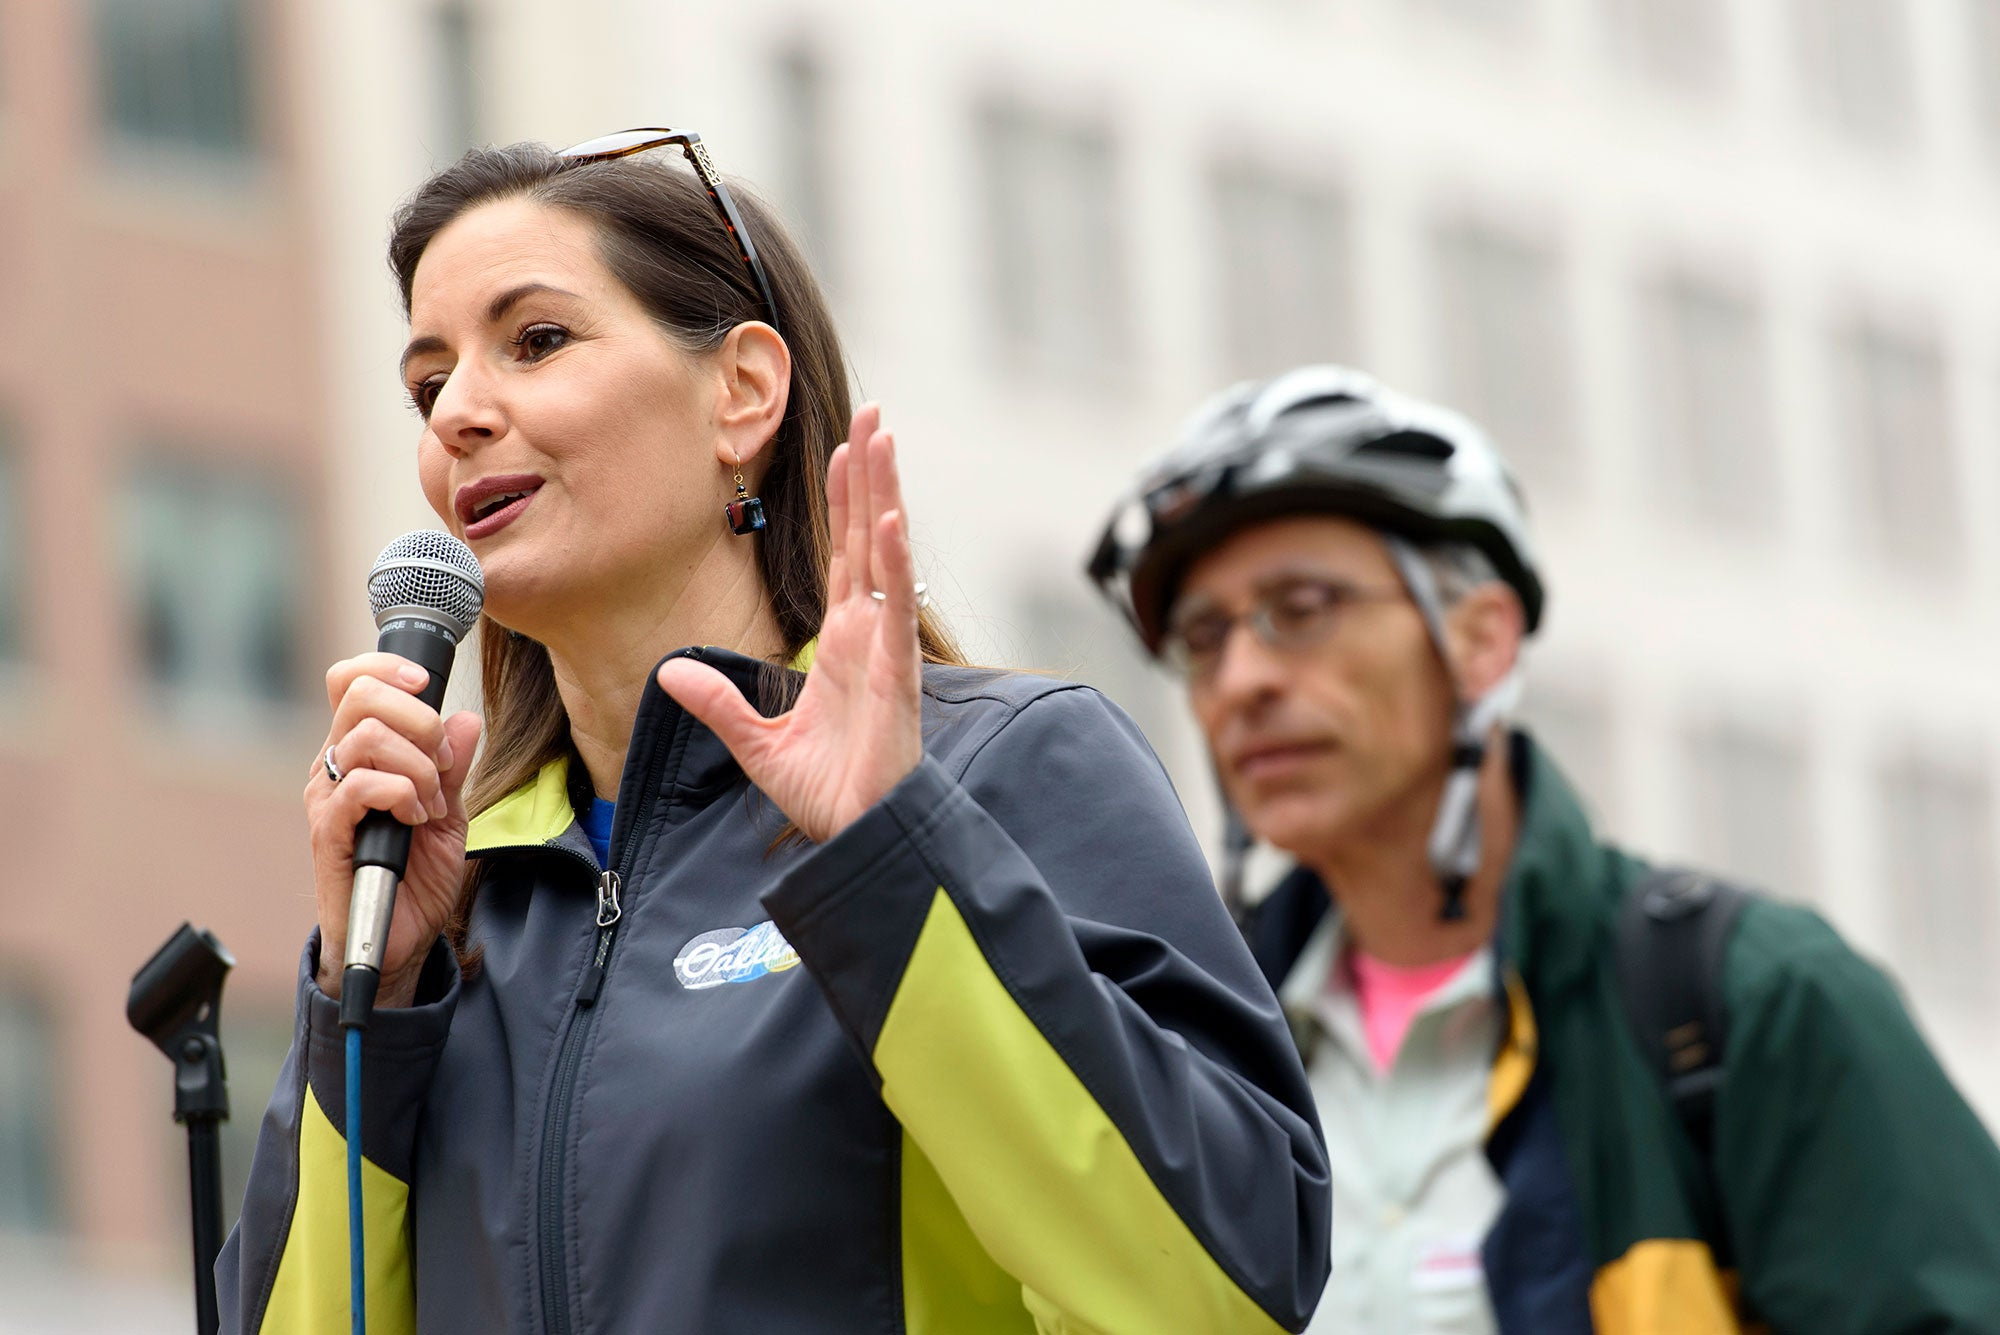 MTC Commissioner and Oakland Mayor Libby Schaaf welcomes hungry celebrants at the annual Bike to Work Day breakfast in Frank Ogawa Plaza